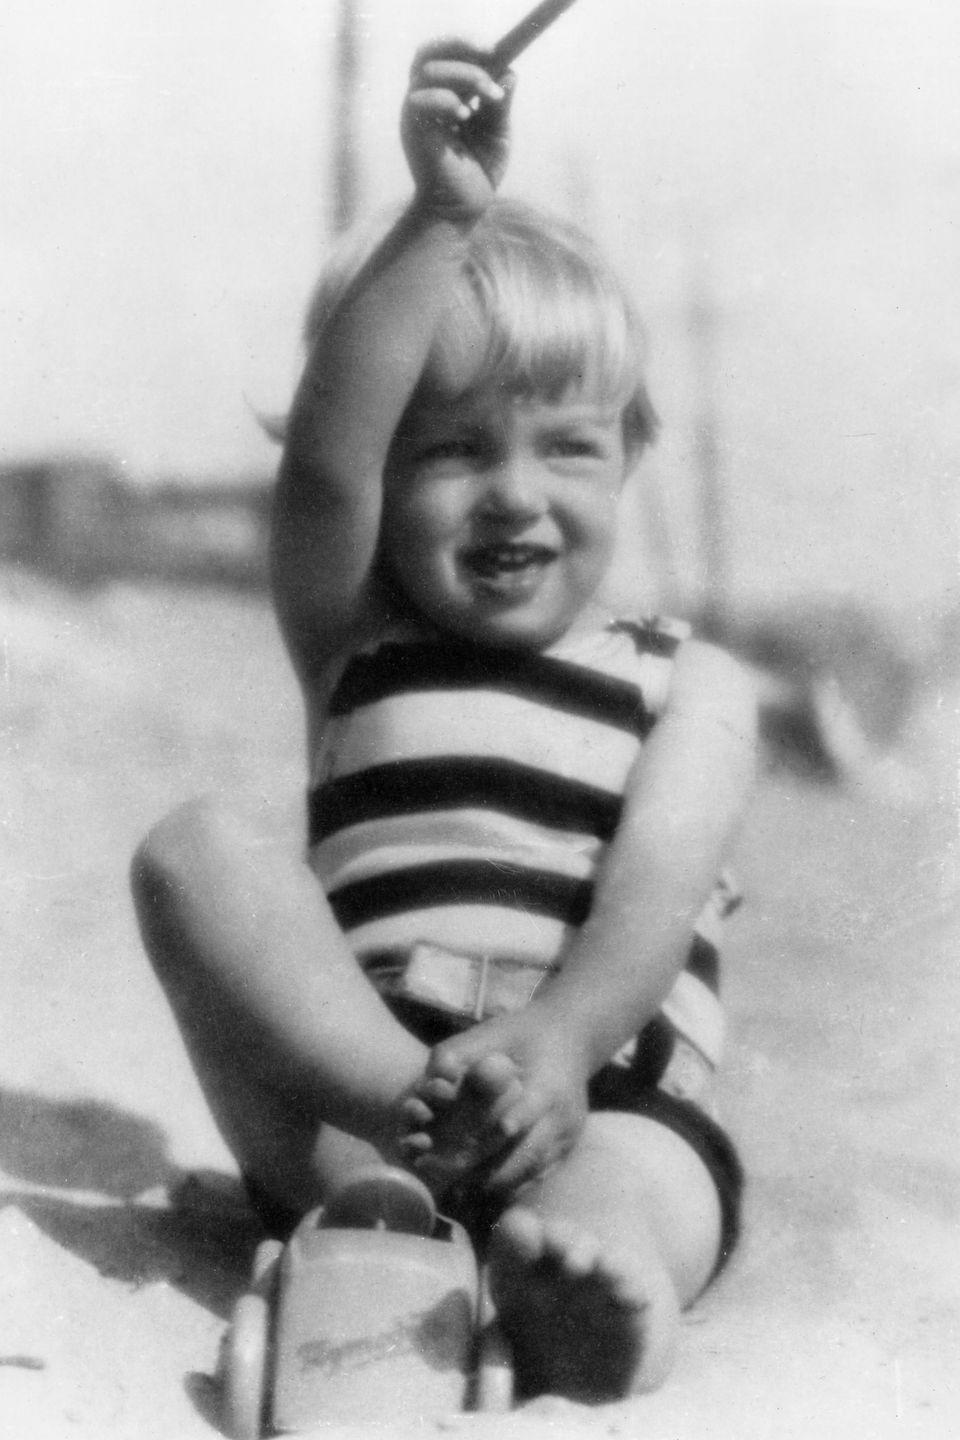 <p>Pictured at four years old. Norma was born in Los Angeles in 1926 where she found herself jumping around to various foster homes over the years after her mother Gladys was declared unfit to care for her. </p>